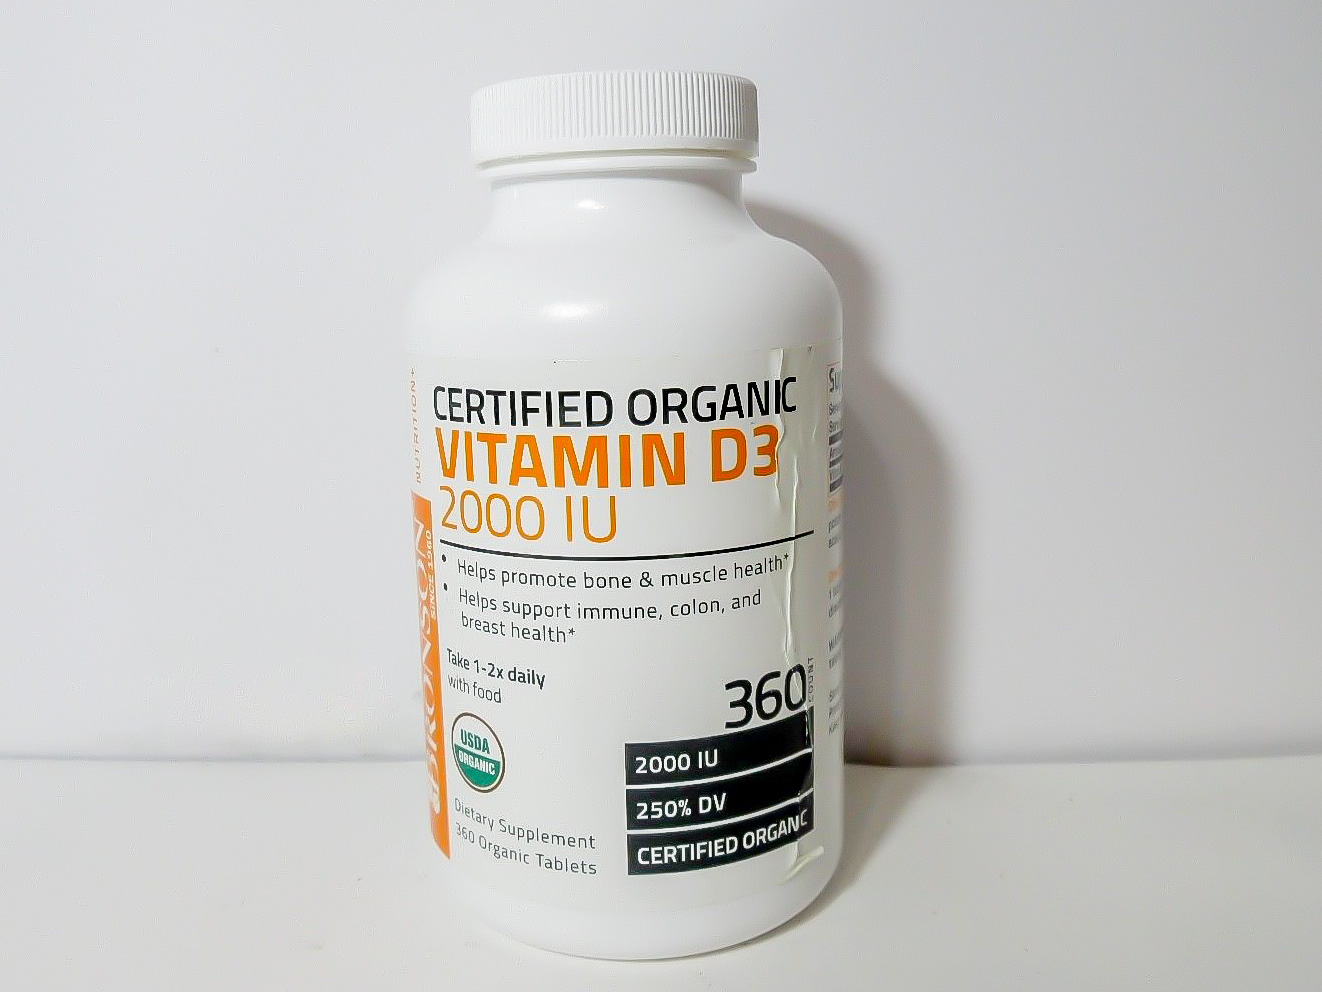 Image of a bottle of Certified Organic Vitamin D3 2000 IU